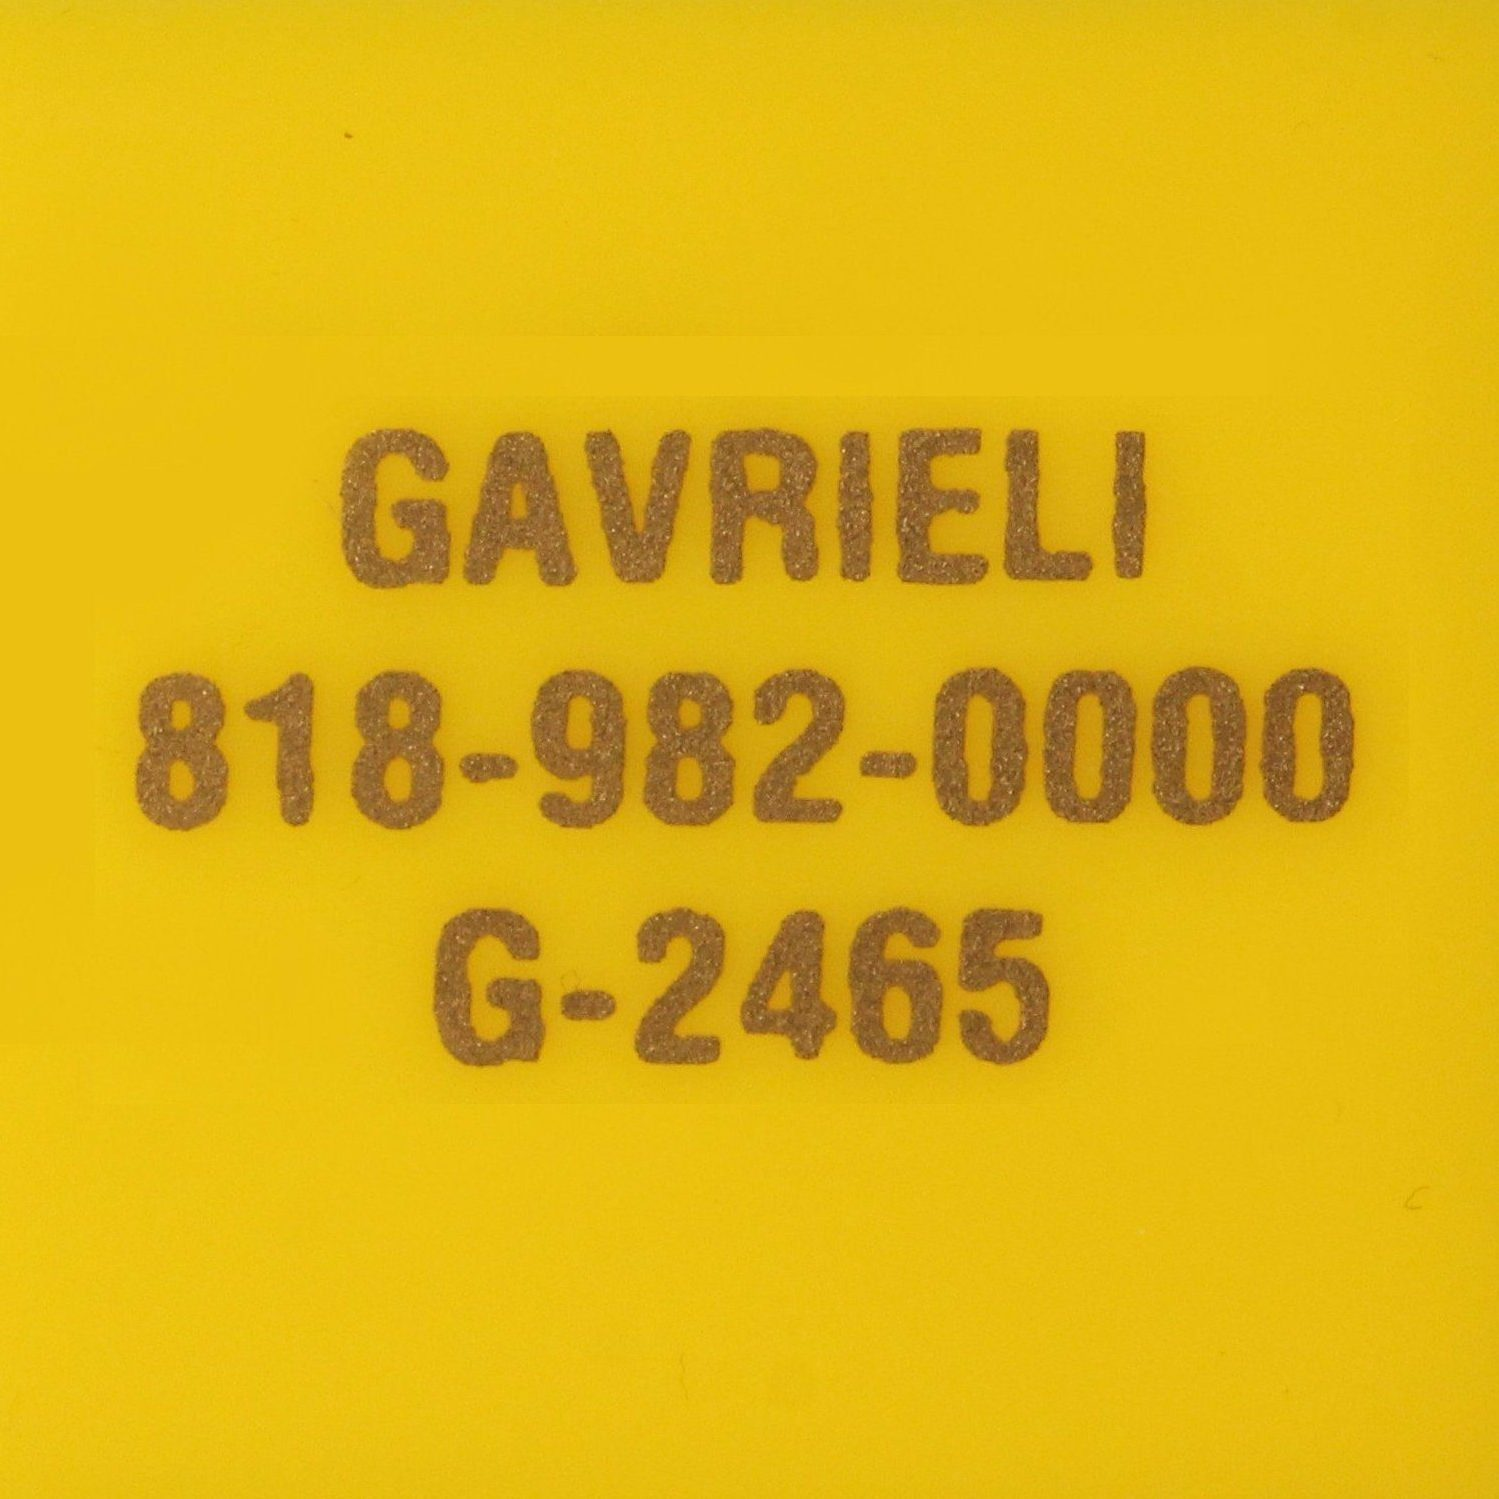 G-2465 LT YELLOW